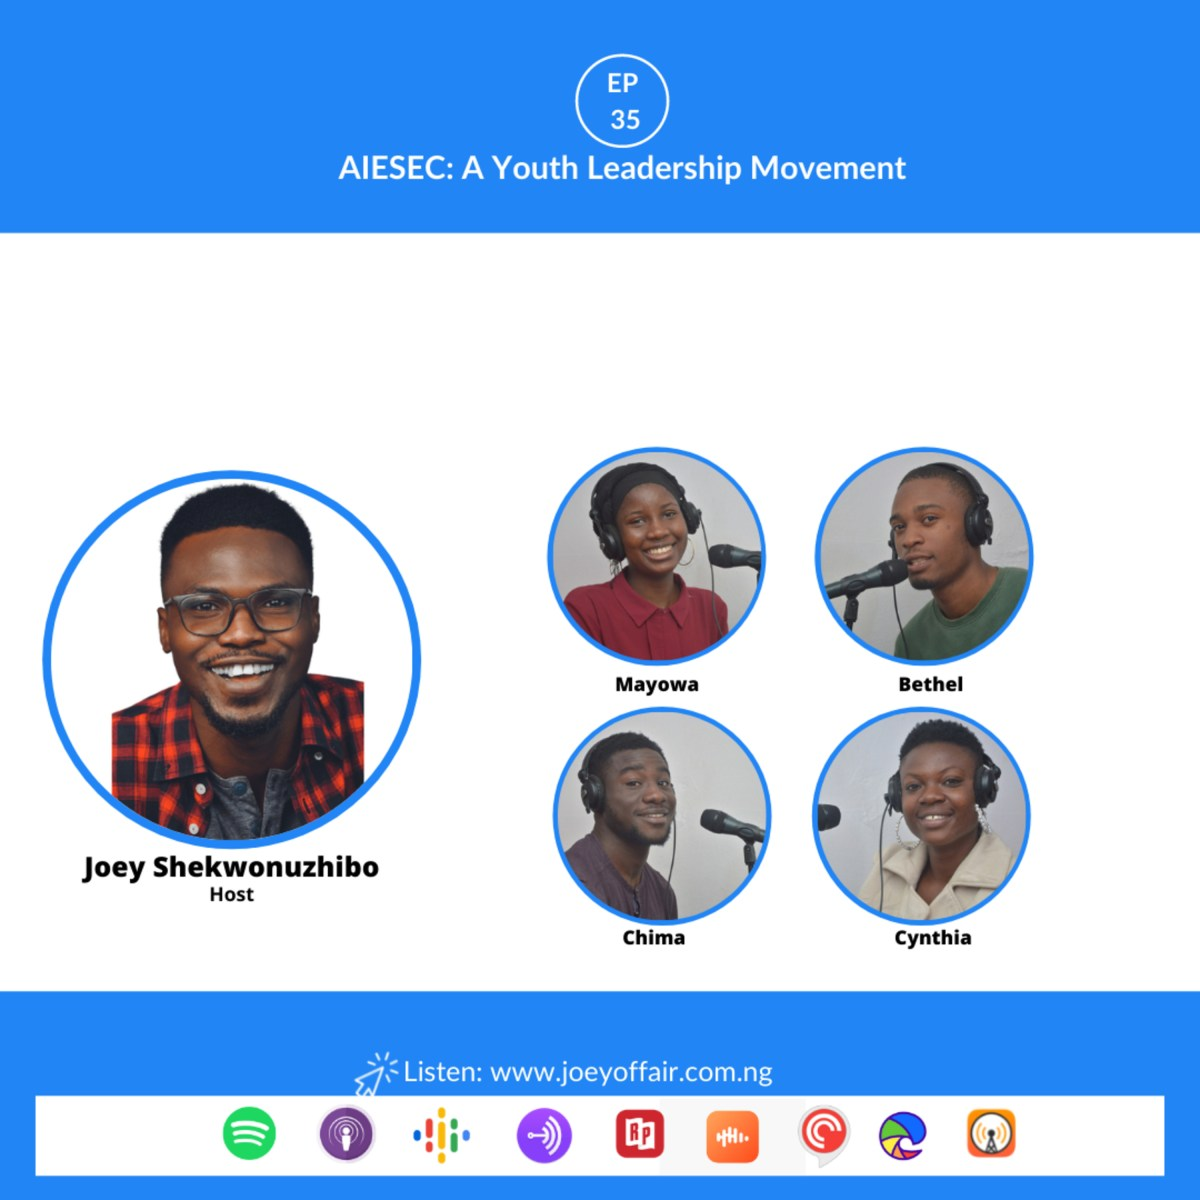 AIESEC: A Youth Leadership Movement